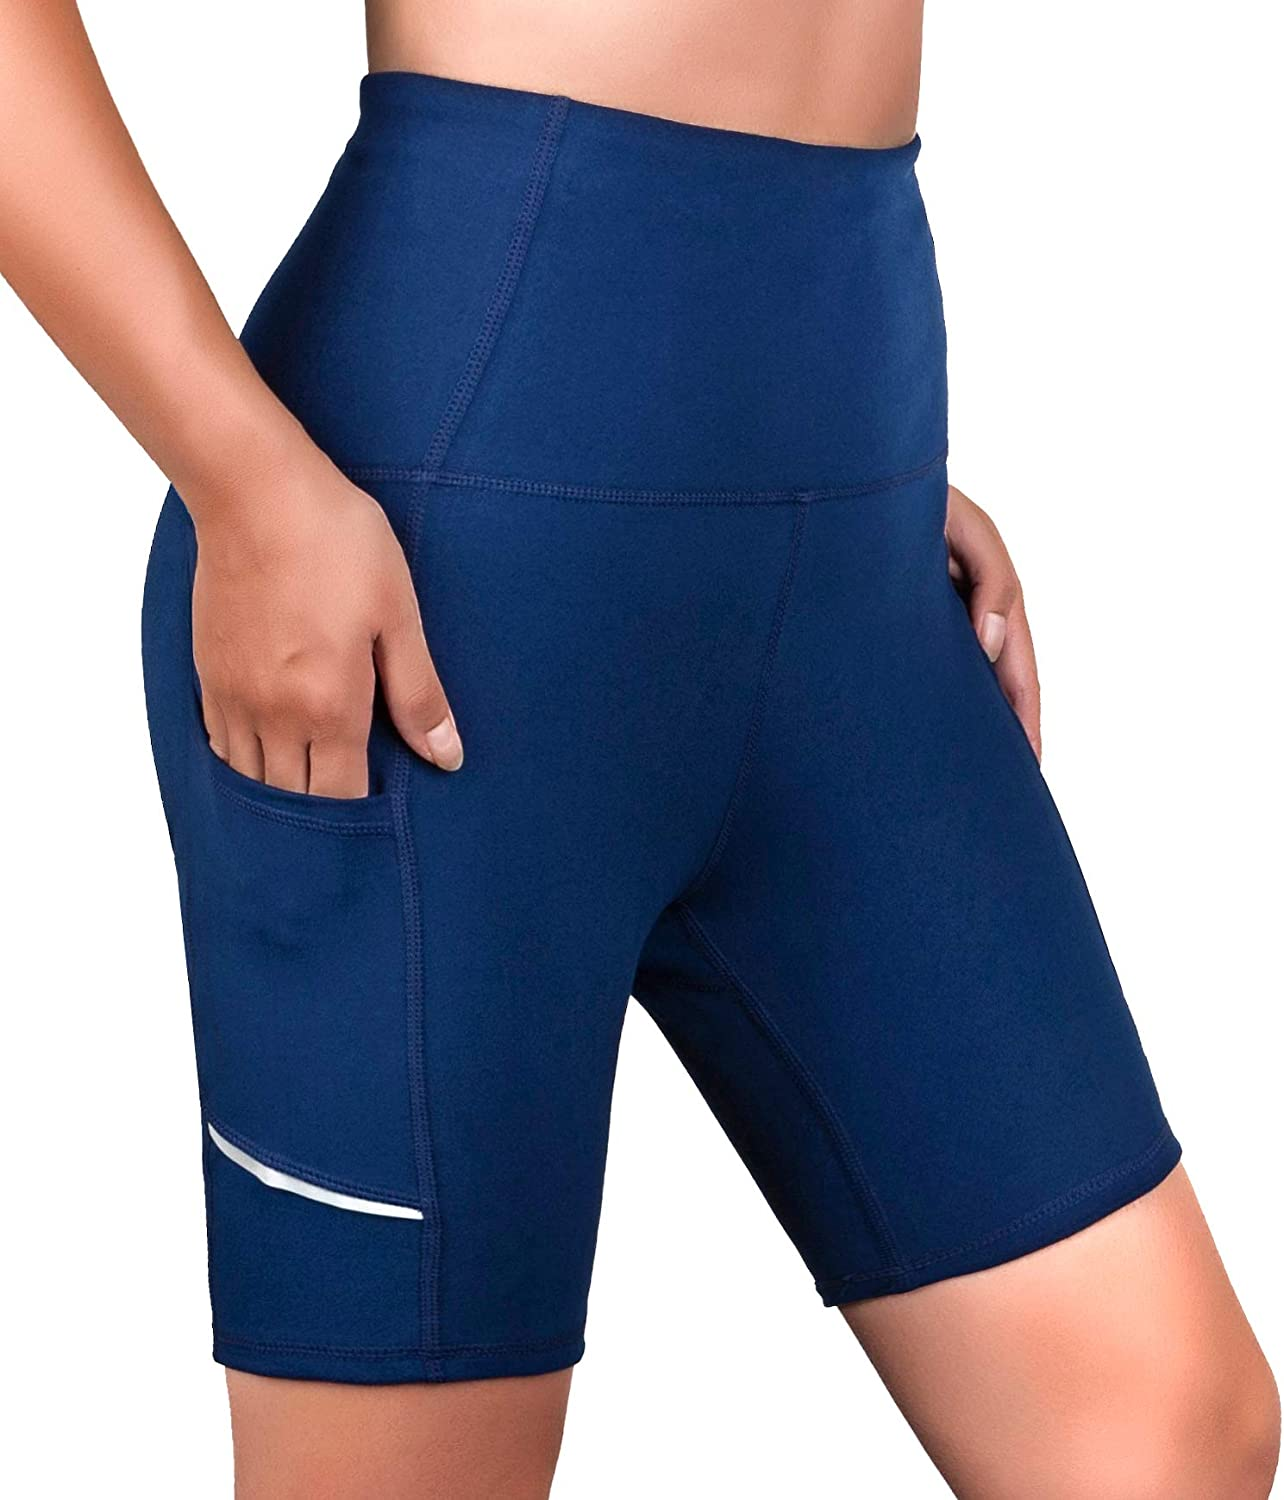 SERHOM Women's Yoga Shorts Workout Max 77% OFF with for Mesa Mall Women Pocket